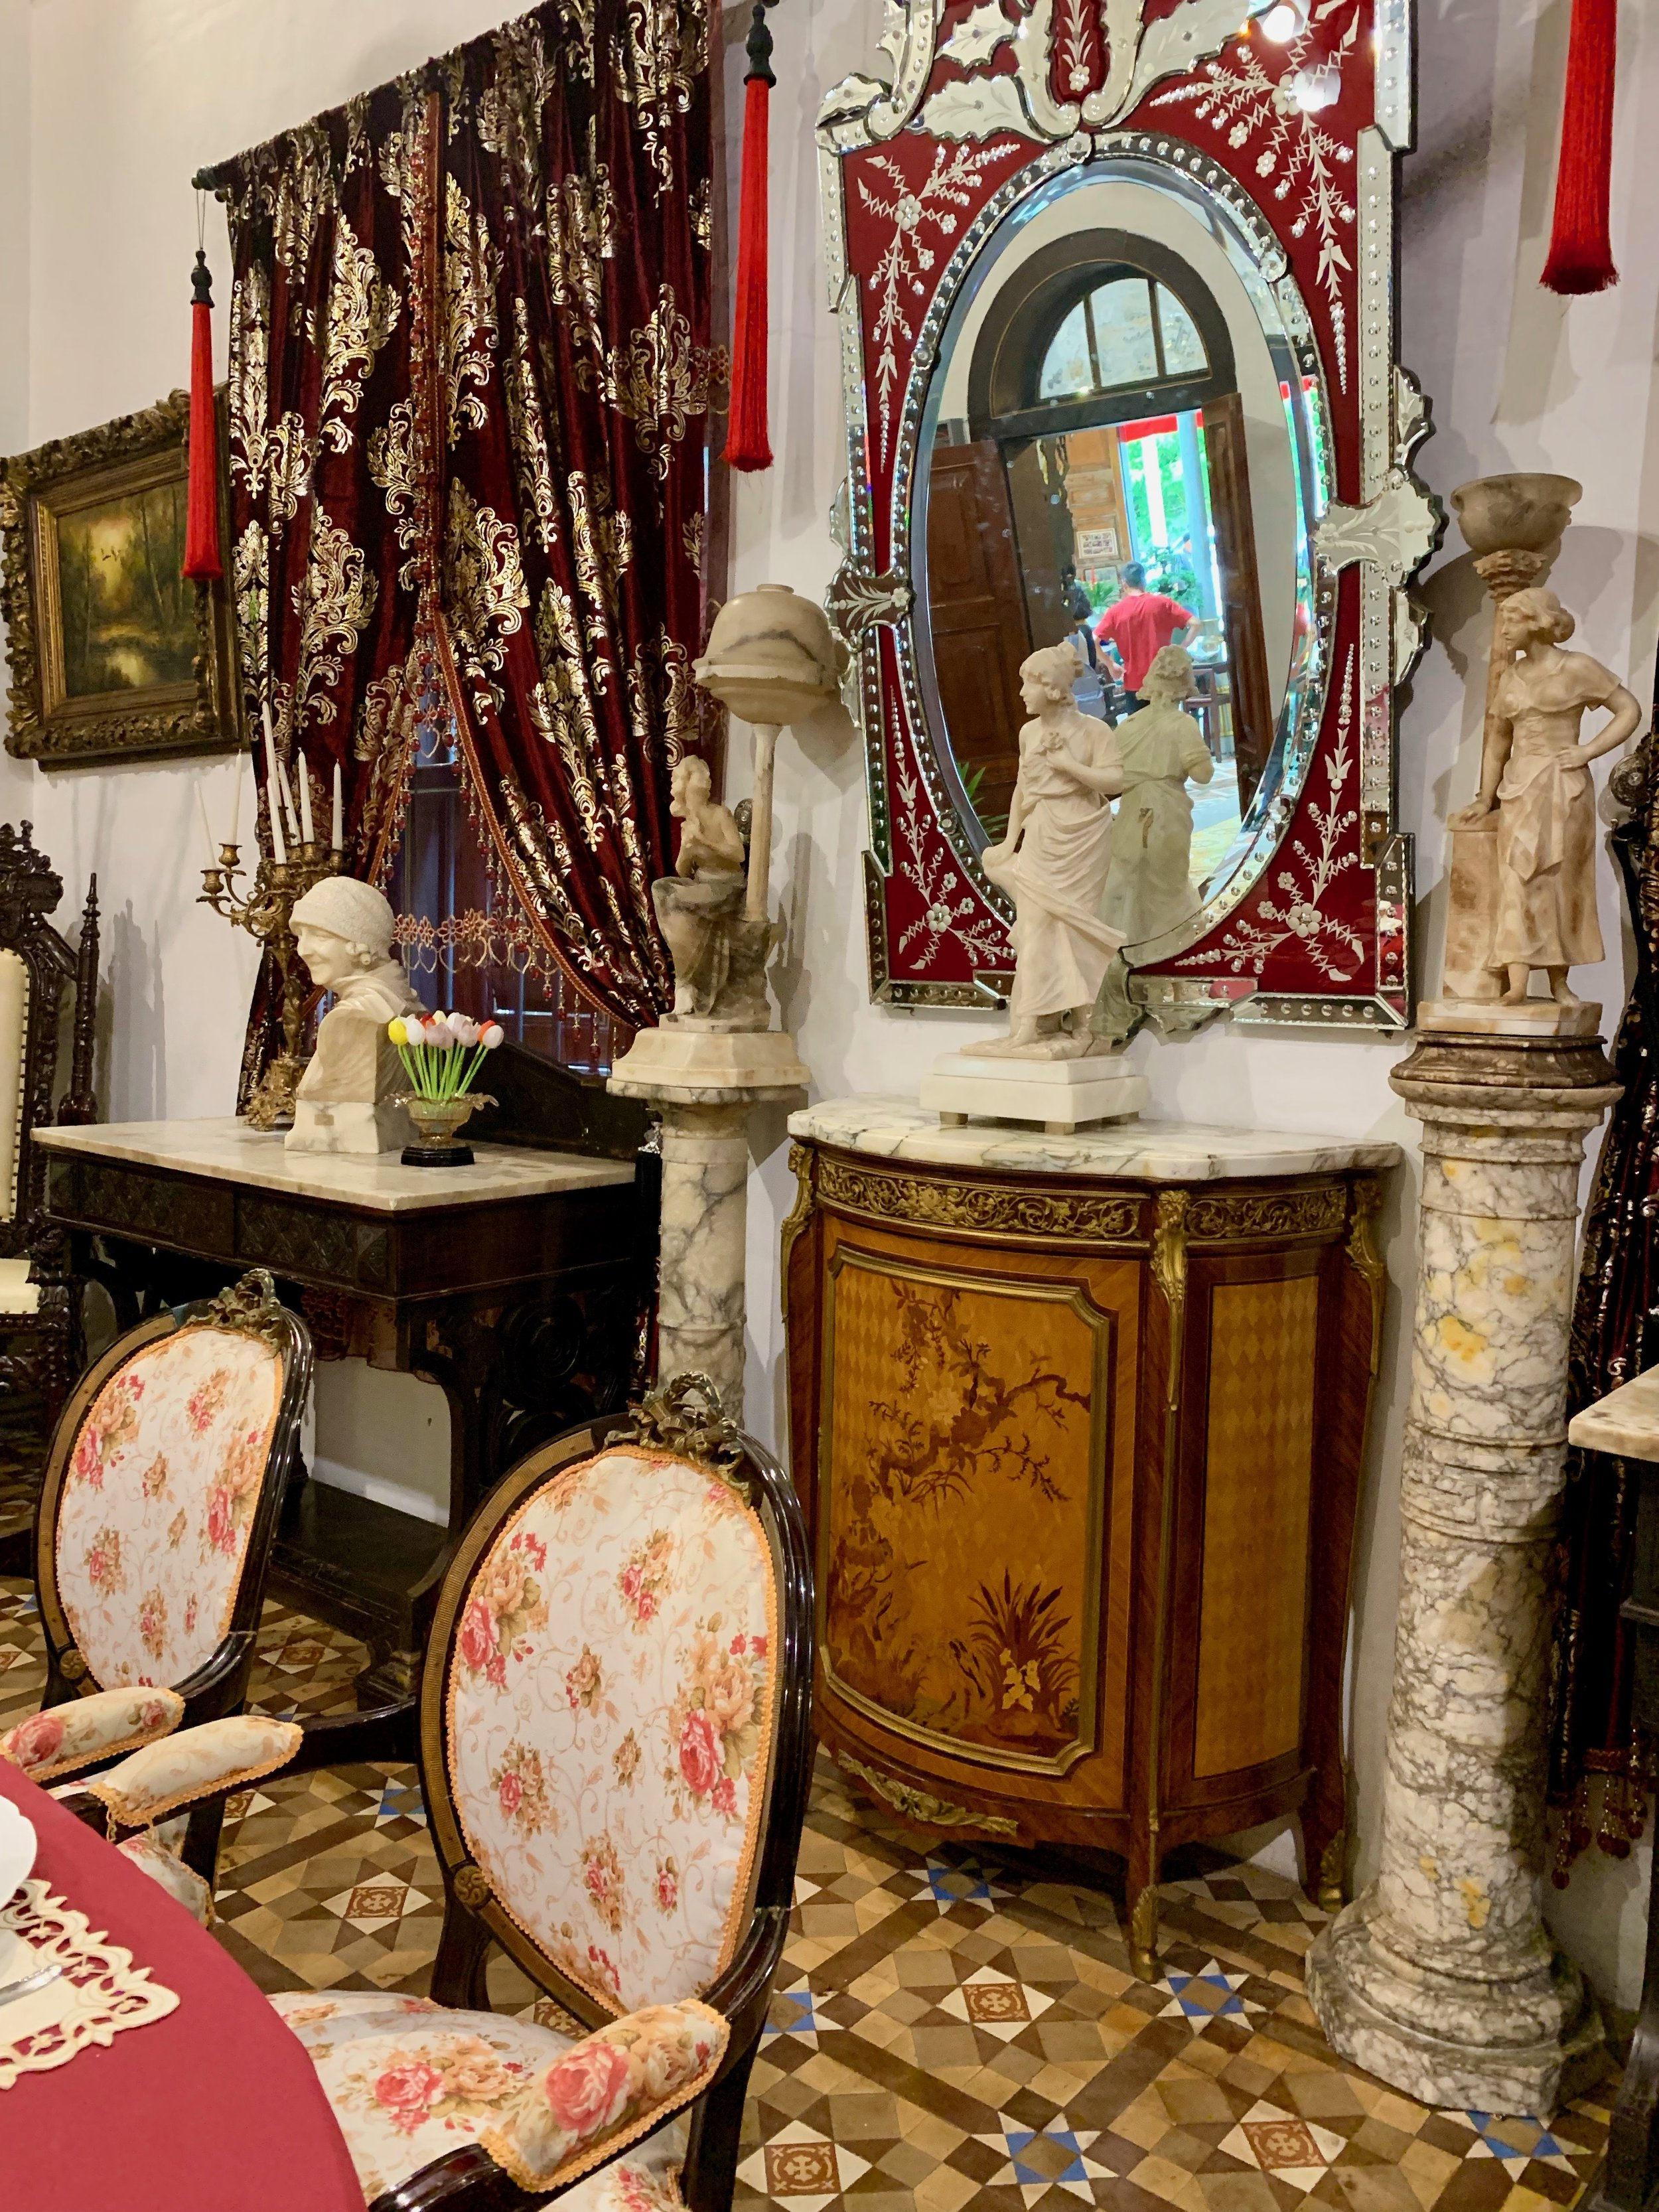 The tour guide took great pleasure in sharing this interesting seating arrangement in the European dinning room with us. If you were seated at the head of the table, this mirror was discretely placed so that you could take a glance and see whom might be entering the front door of the mansion.